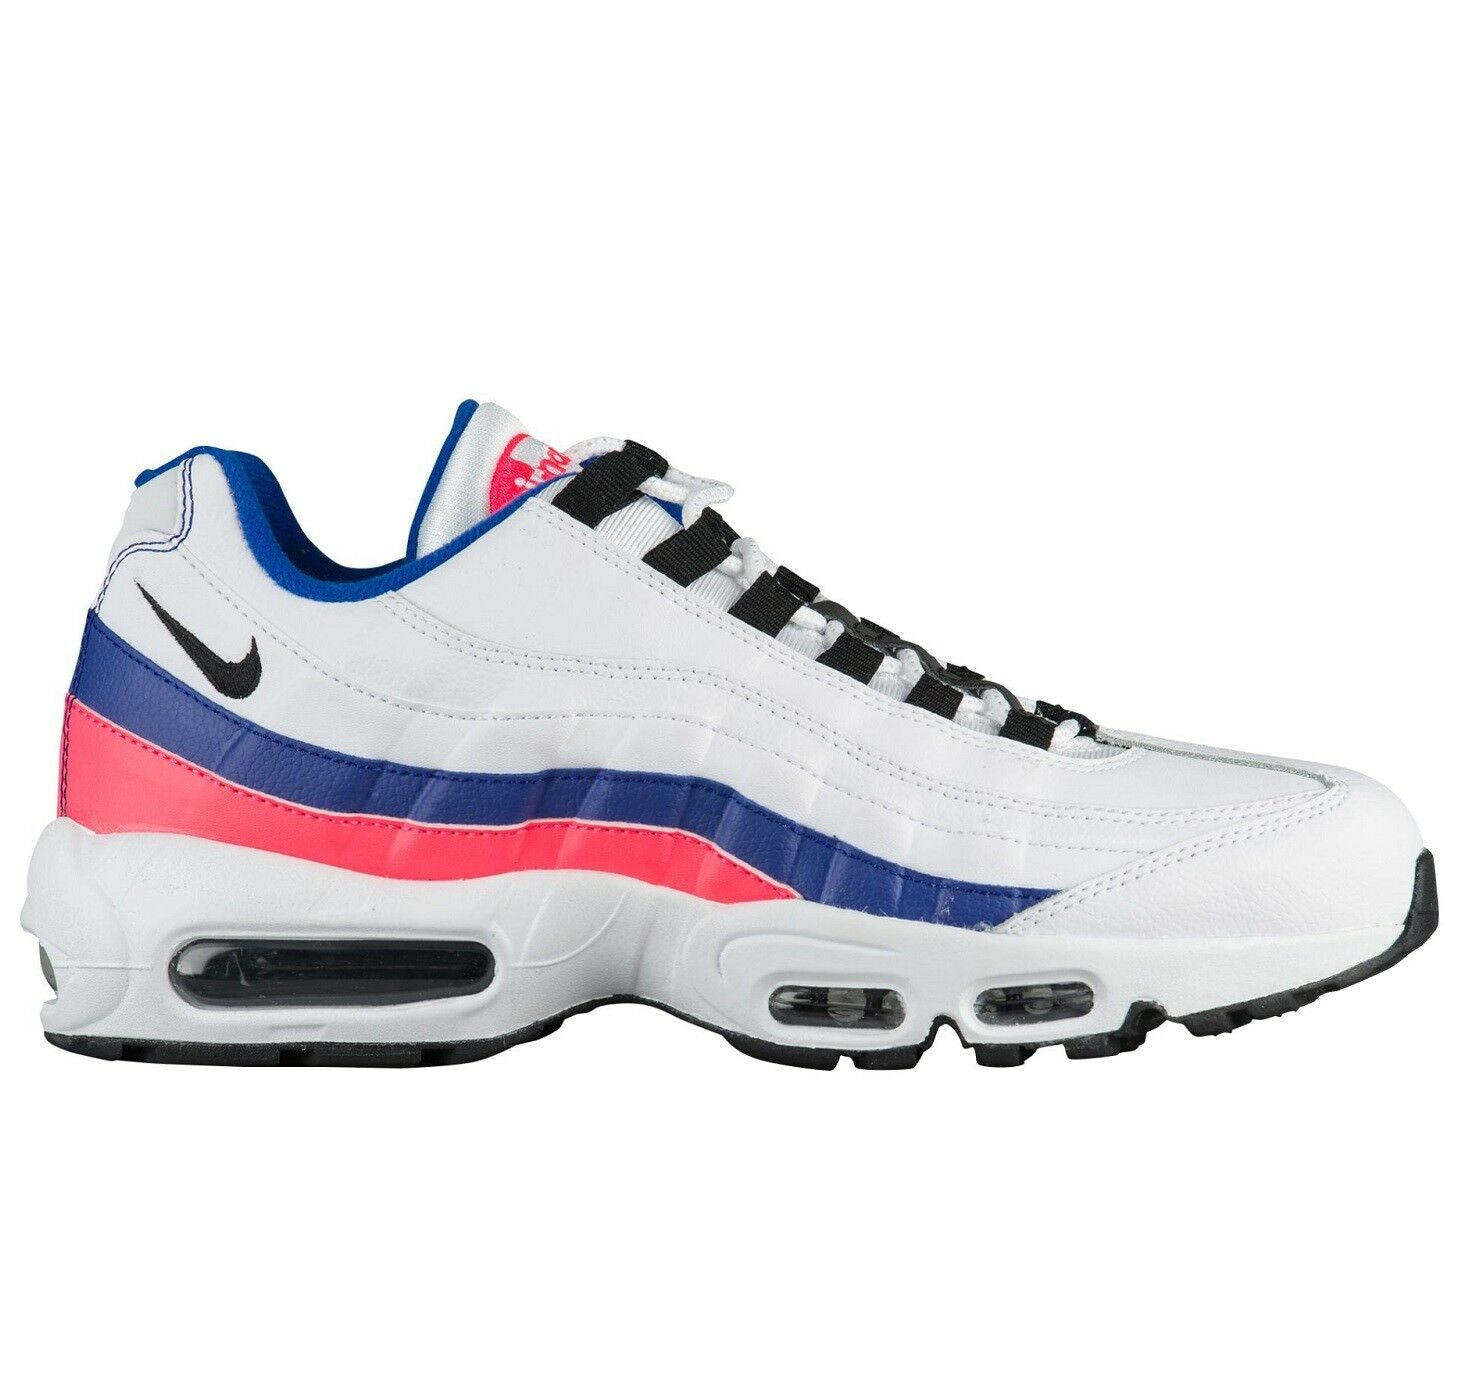 Nike Air Max 95 Essential Mens 749766-106 Ultramarine Solar Red Shoes Comfortable Casual wild